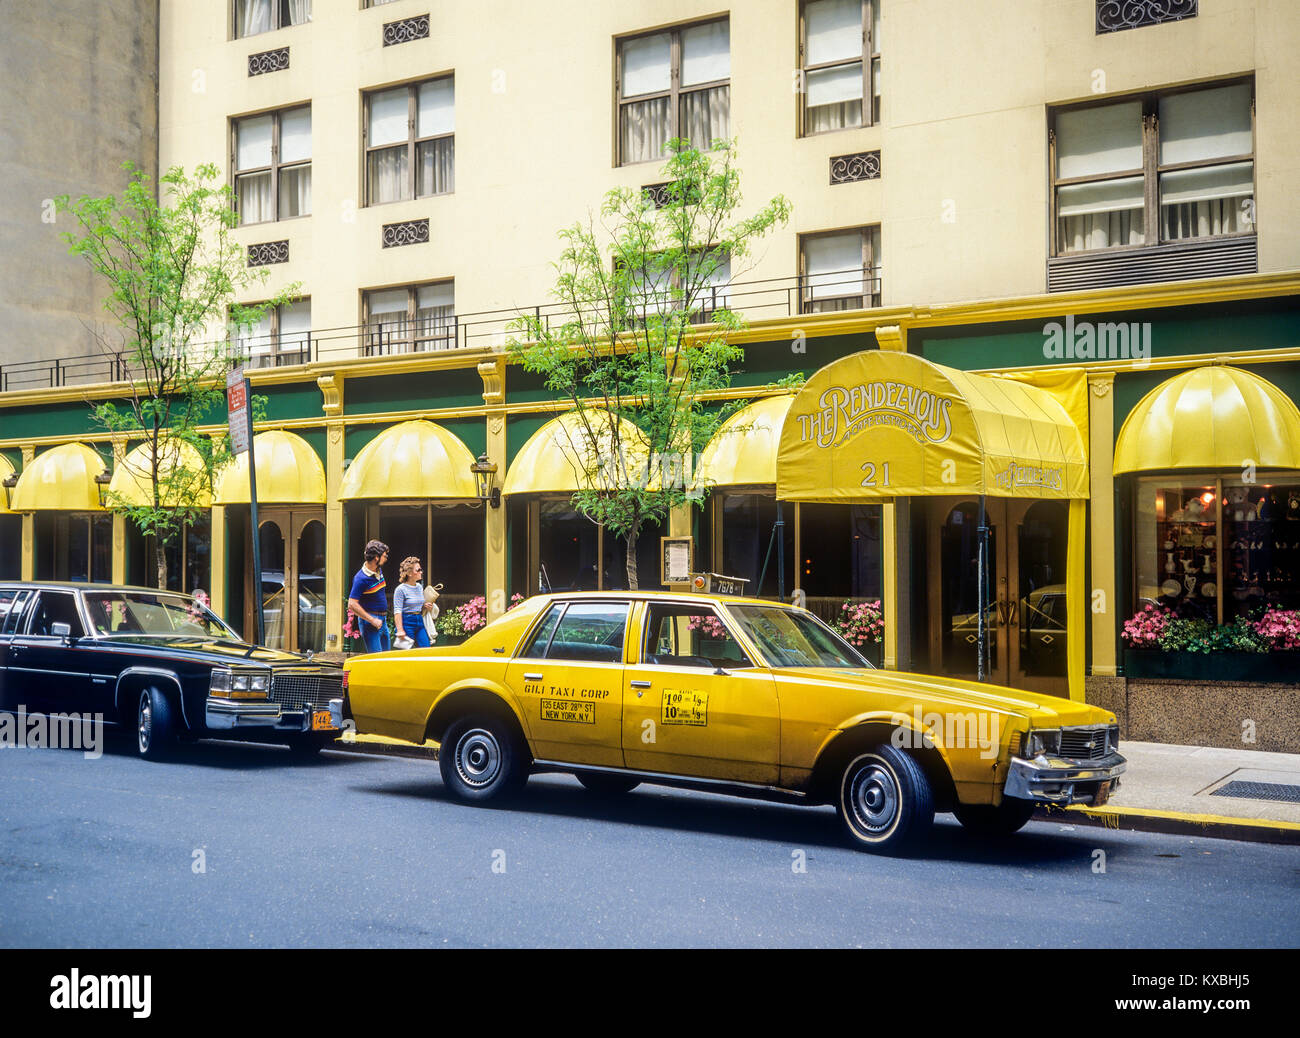 May 1982,New York,parked yellow taxi,The Rendez-vous café bistrot restaurant,couple,Manhattan,New york City,NY,NYC,USA, - Stock Image